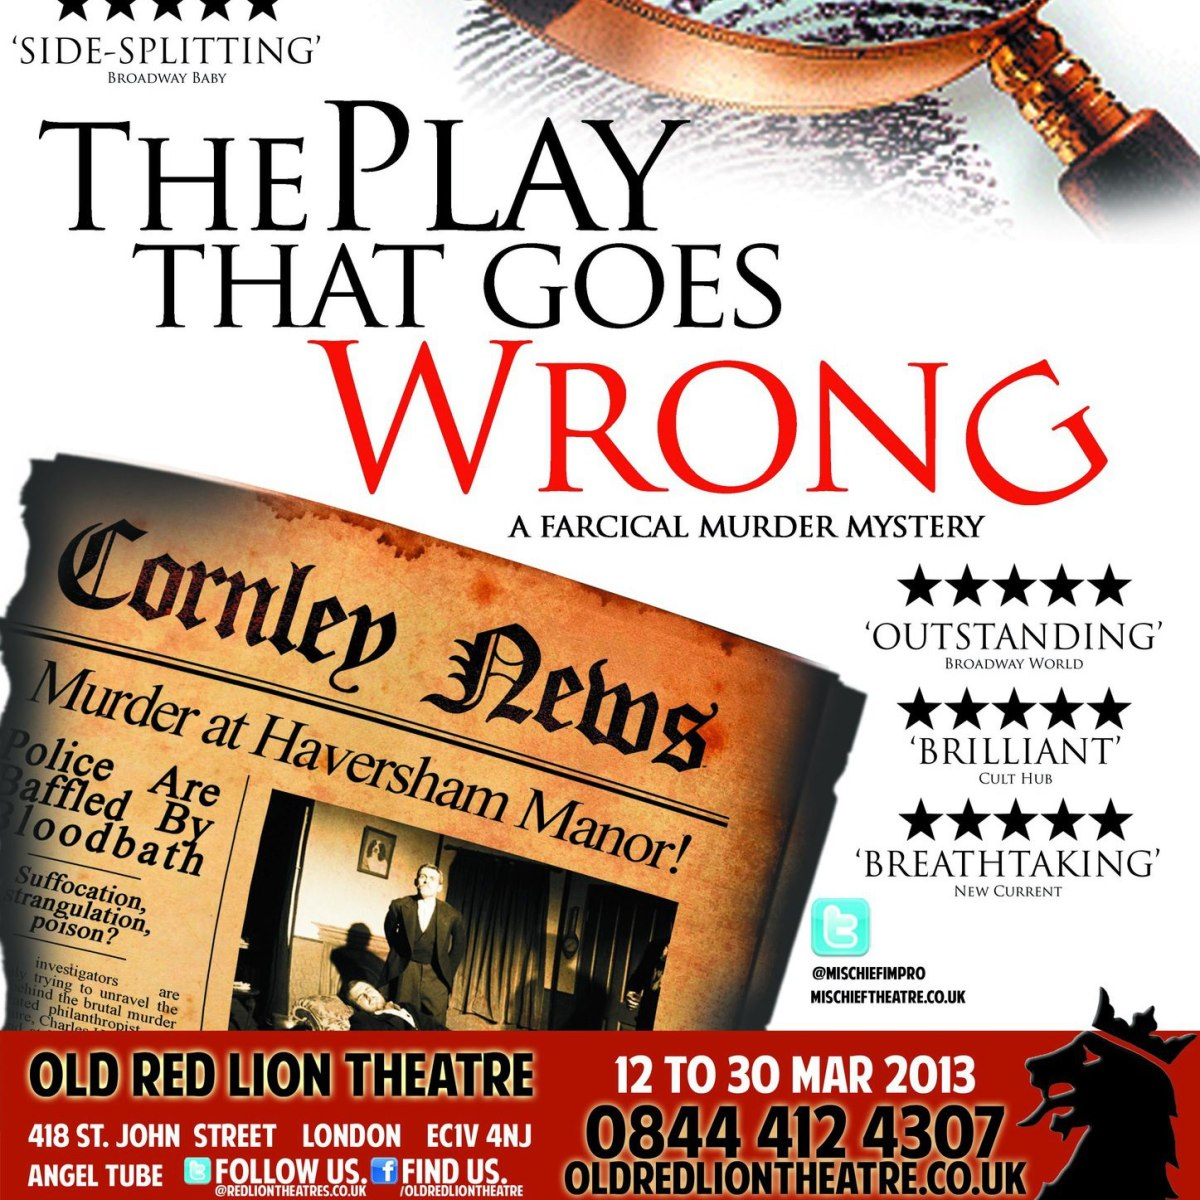 The Play That Goes Wrong at the Old Red Lion